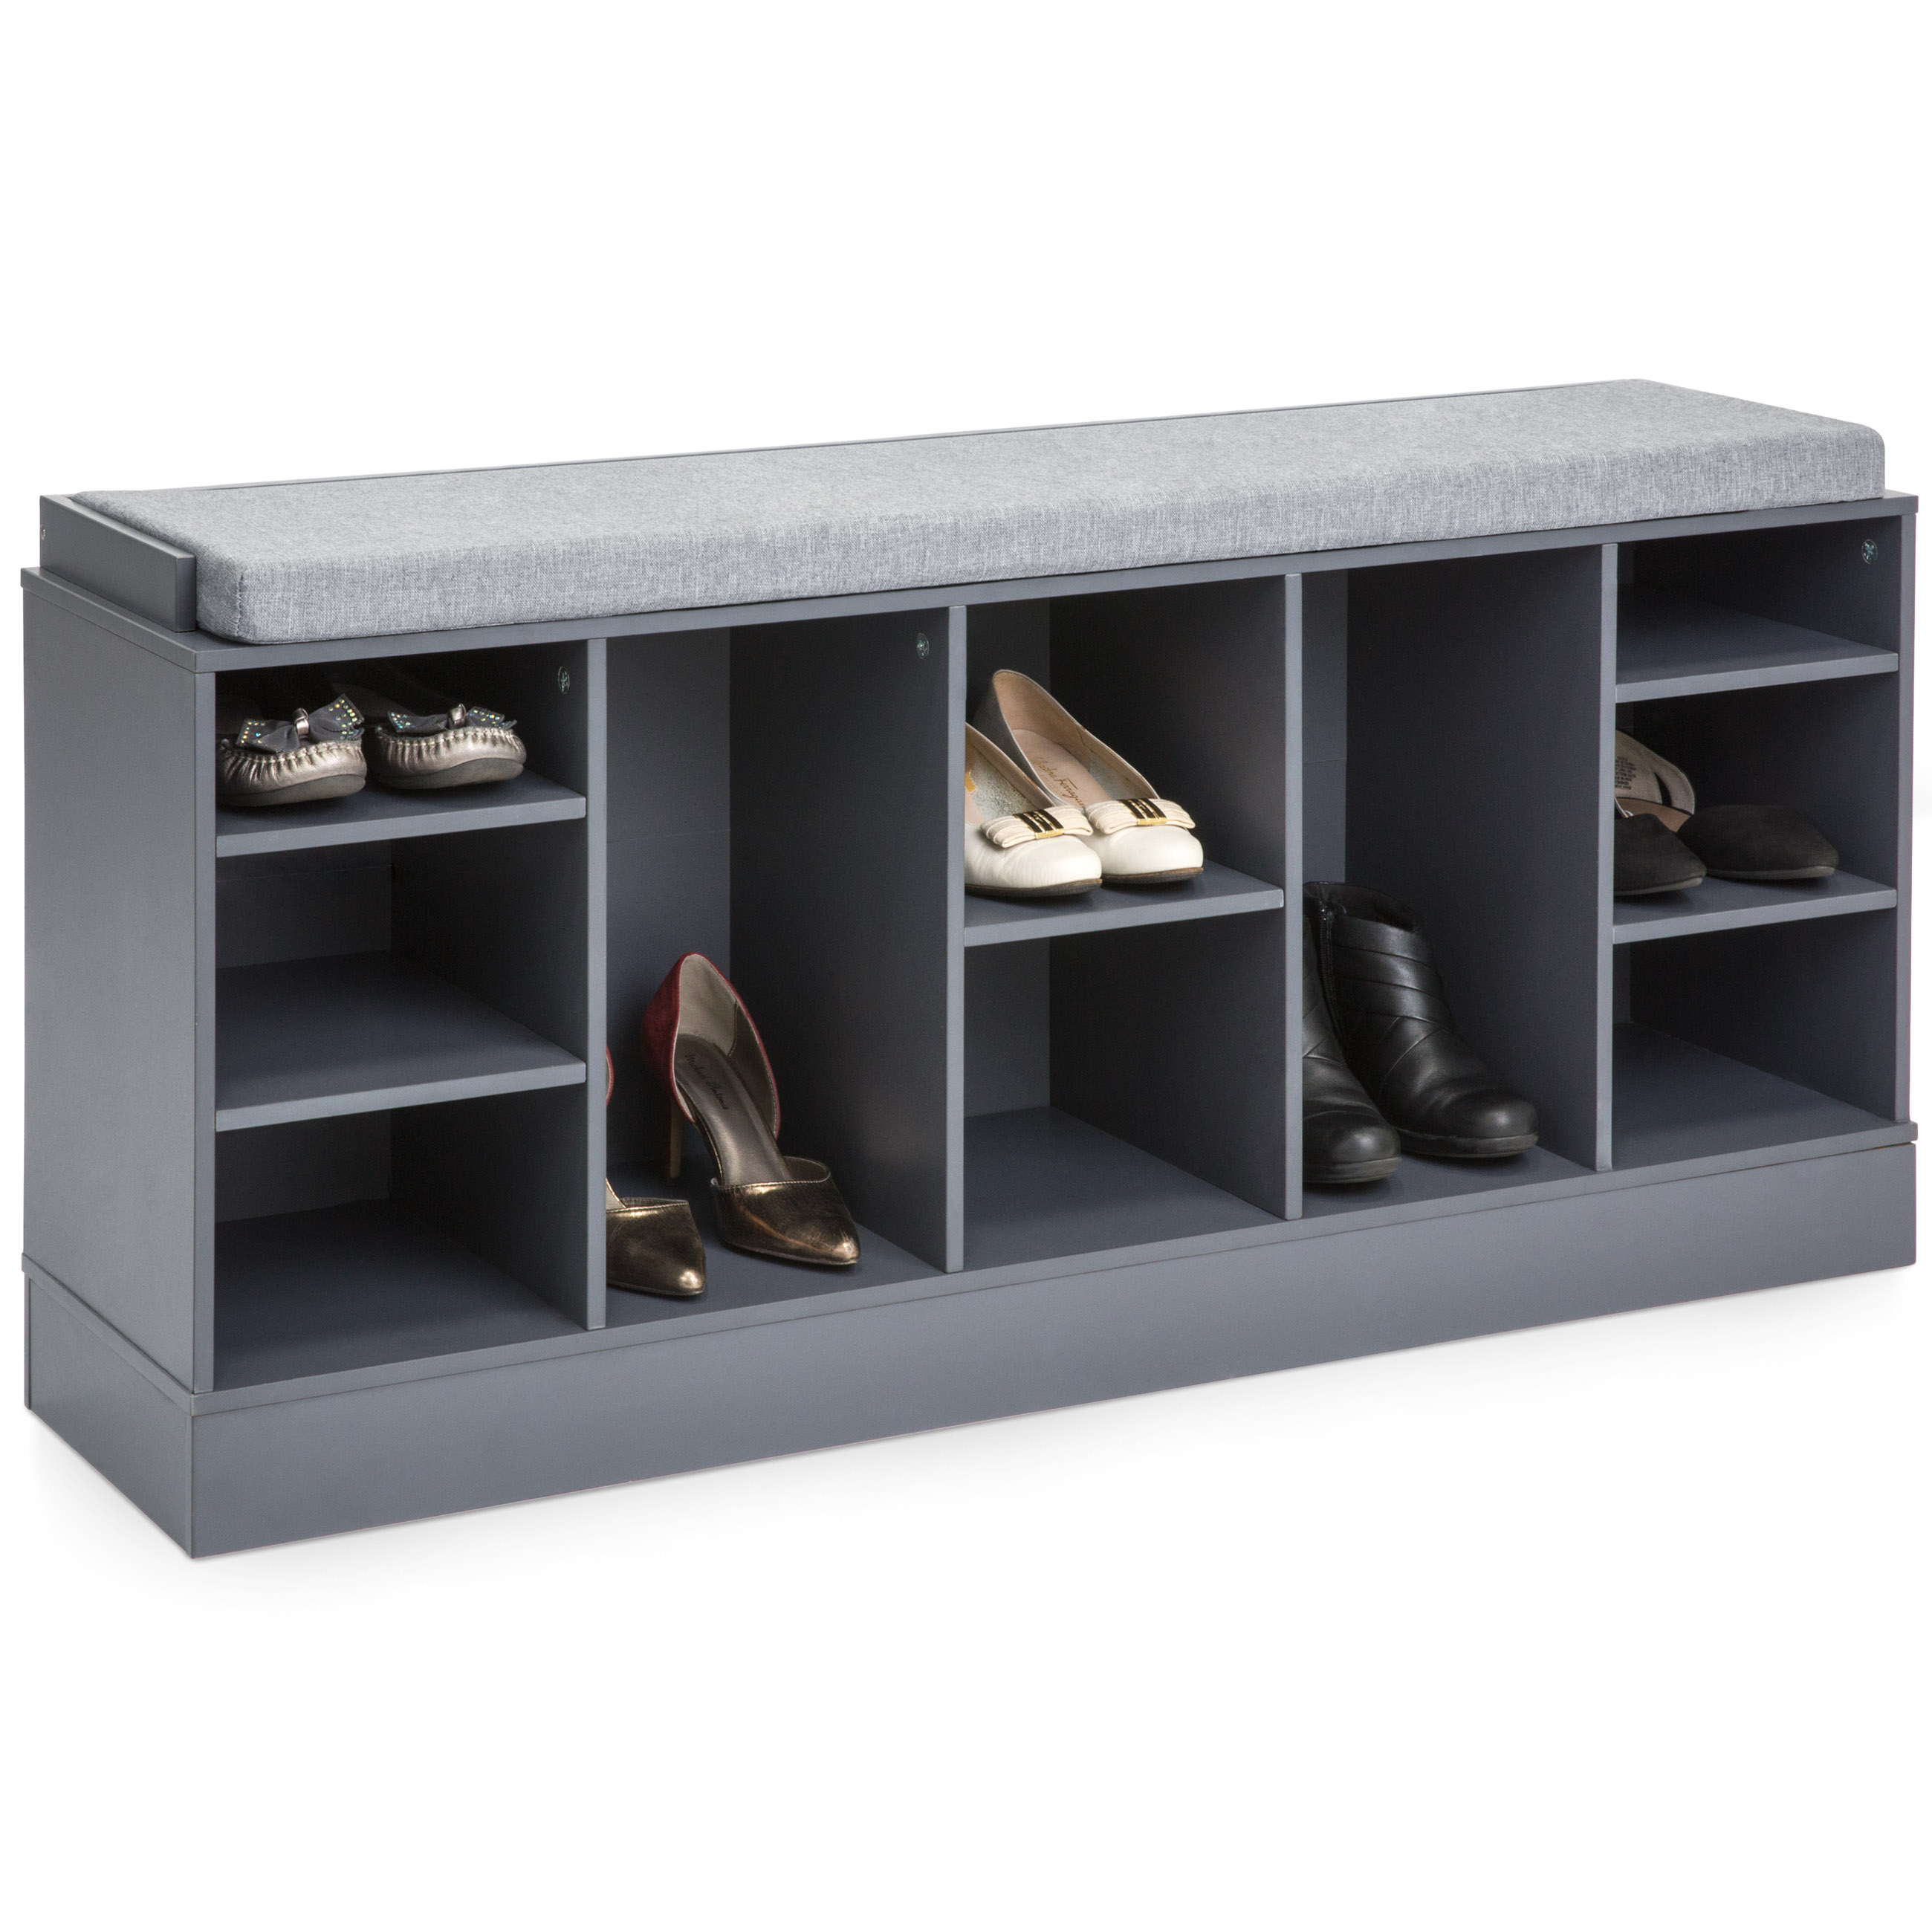 Fine Best Choice Products Shoe Storage Organization Rack Bench For Entryway Bedroom W Padded Seat 10 Cubbies Walmart Com Ocoug Best Dining Table And Chair Ideas Images Ocougorg